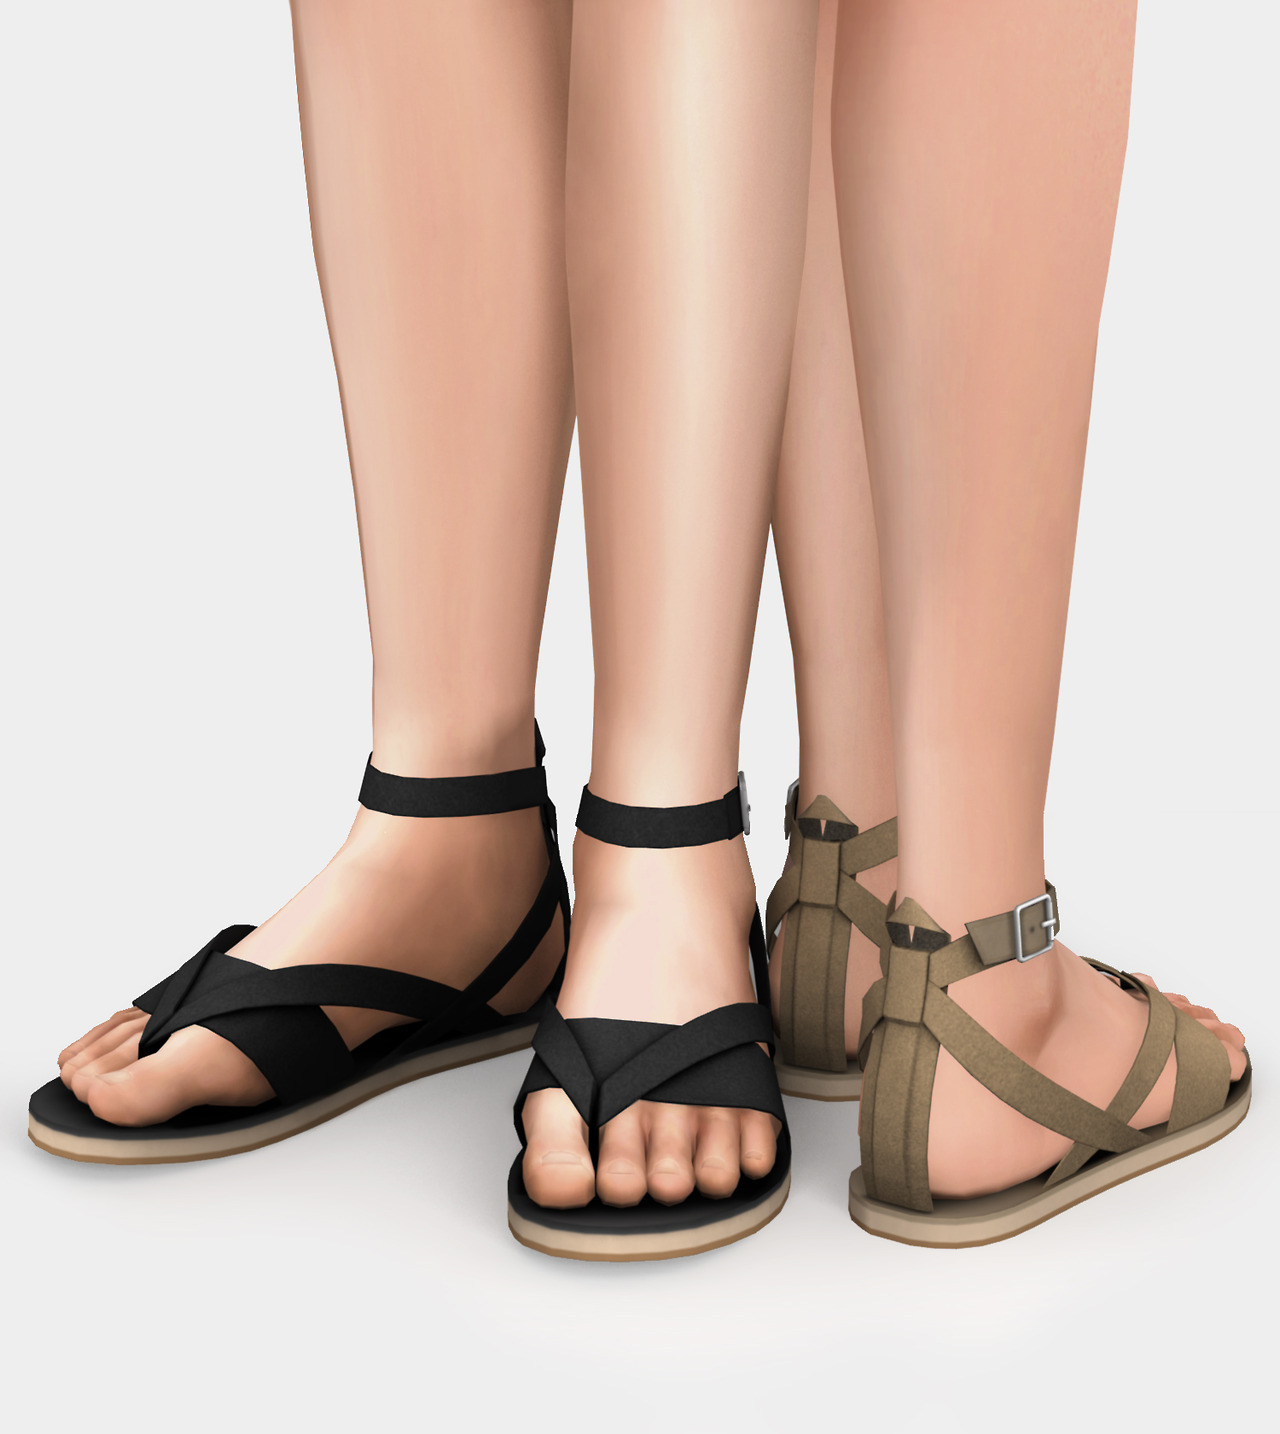 sims 4 cc's - the best: dries van noten sandals (2) by mauvemorn, Badezimmer ideen